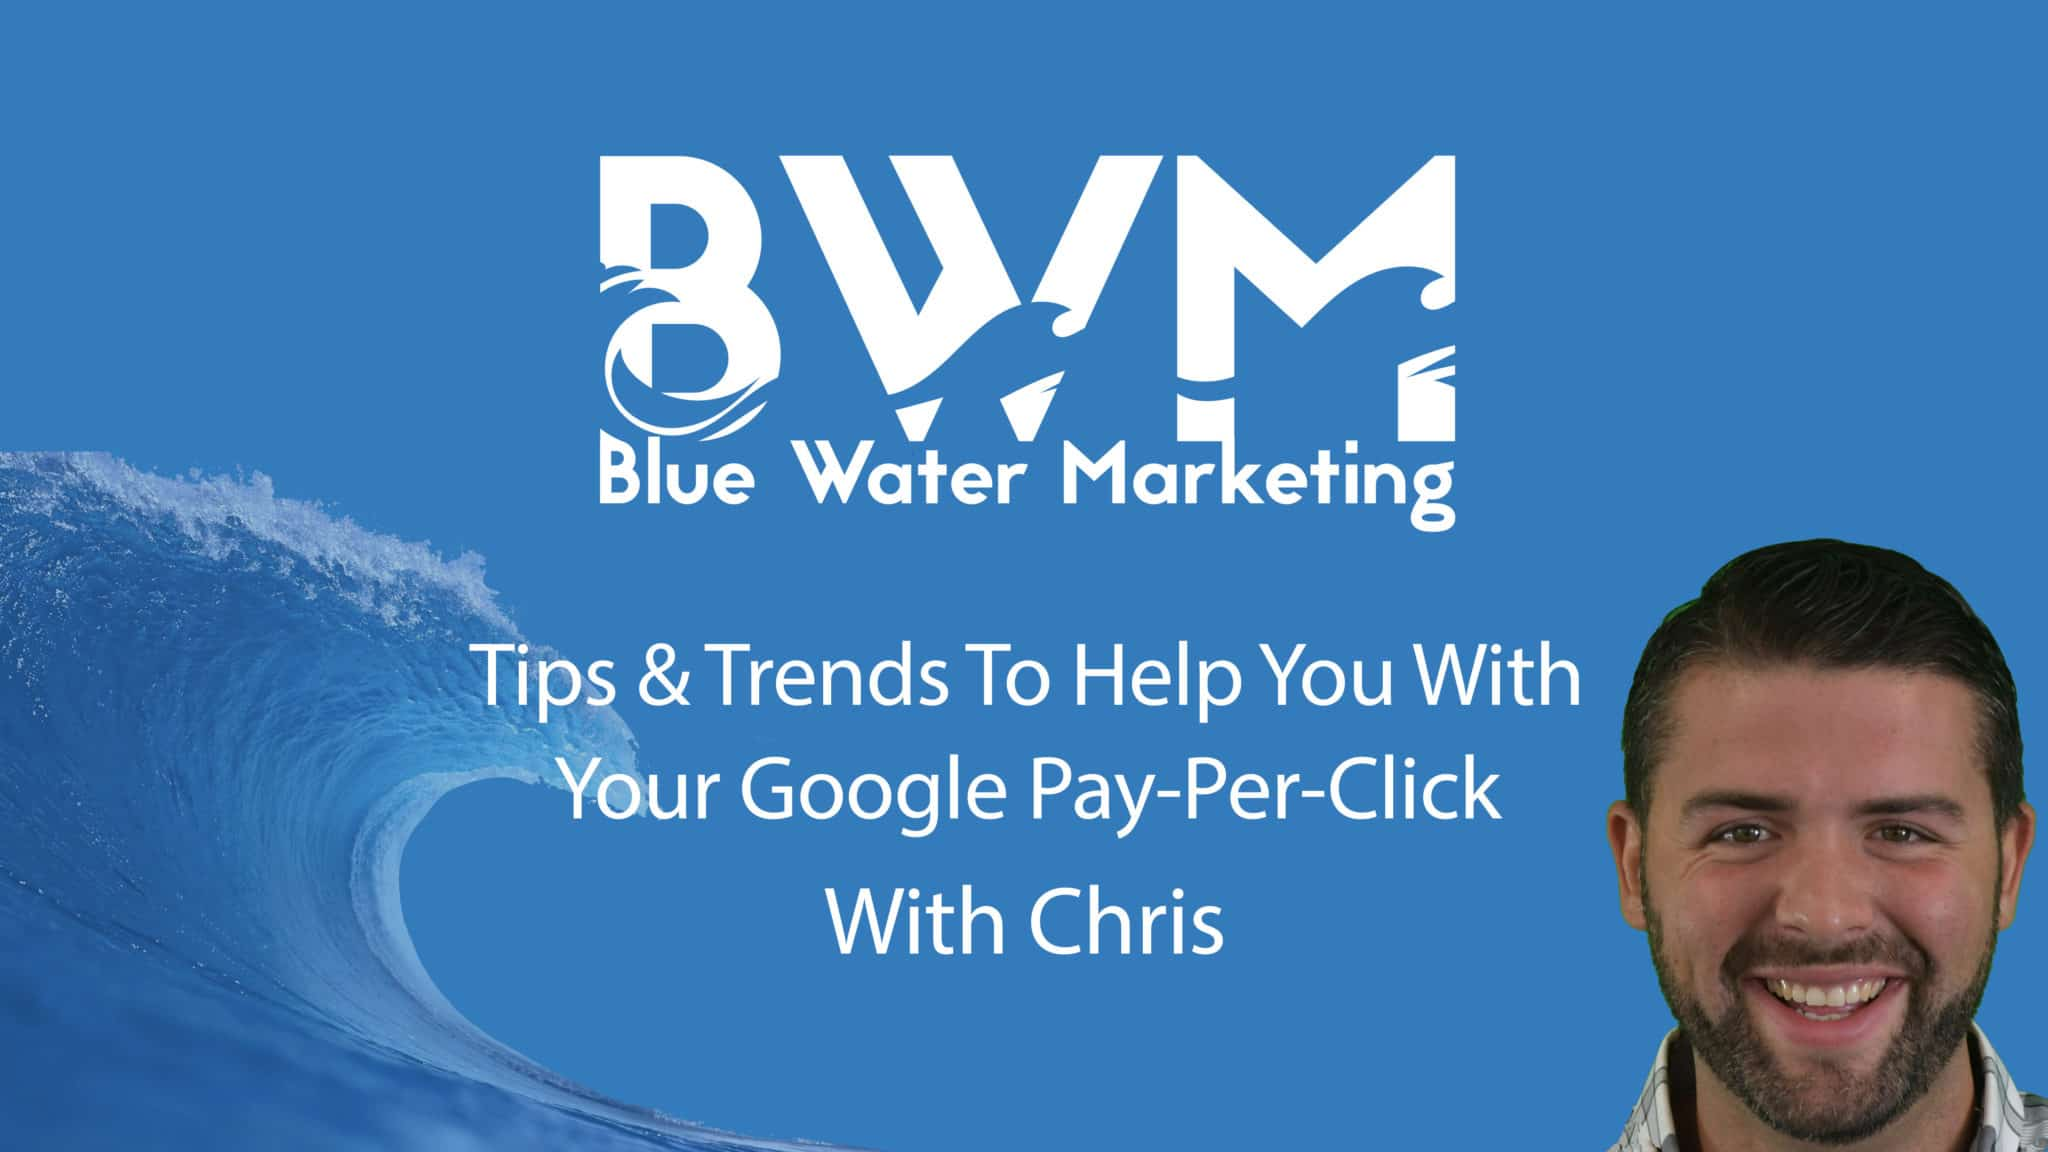 PPC Tips & Trends With Chris